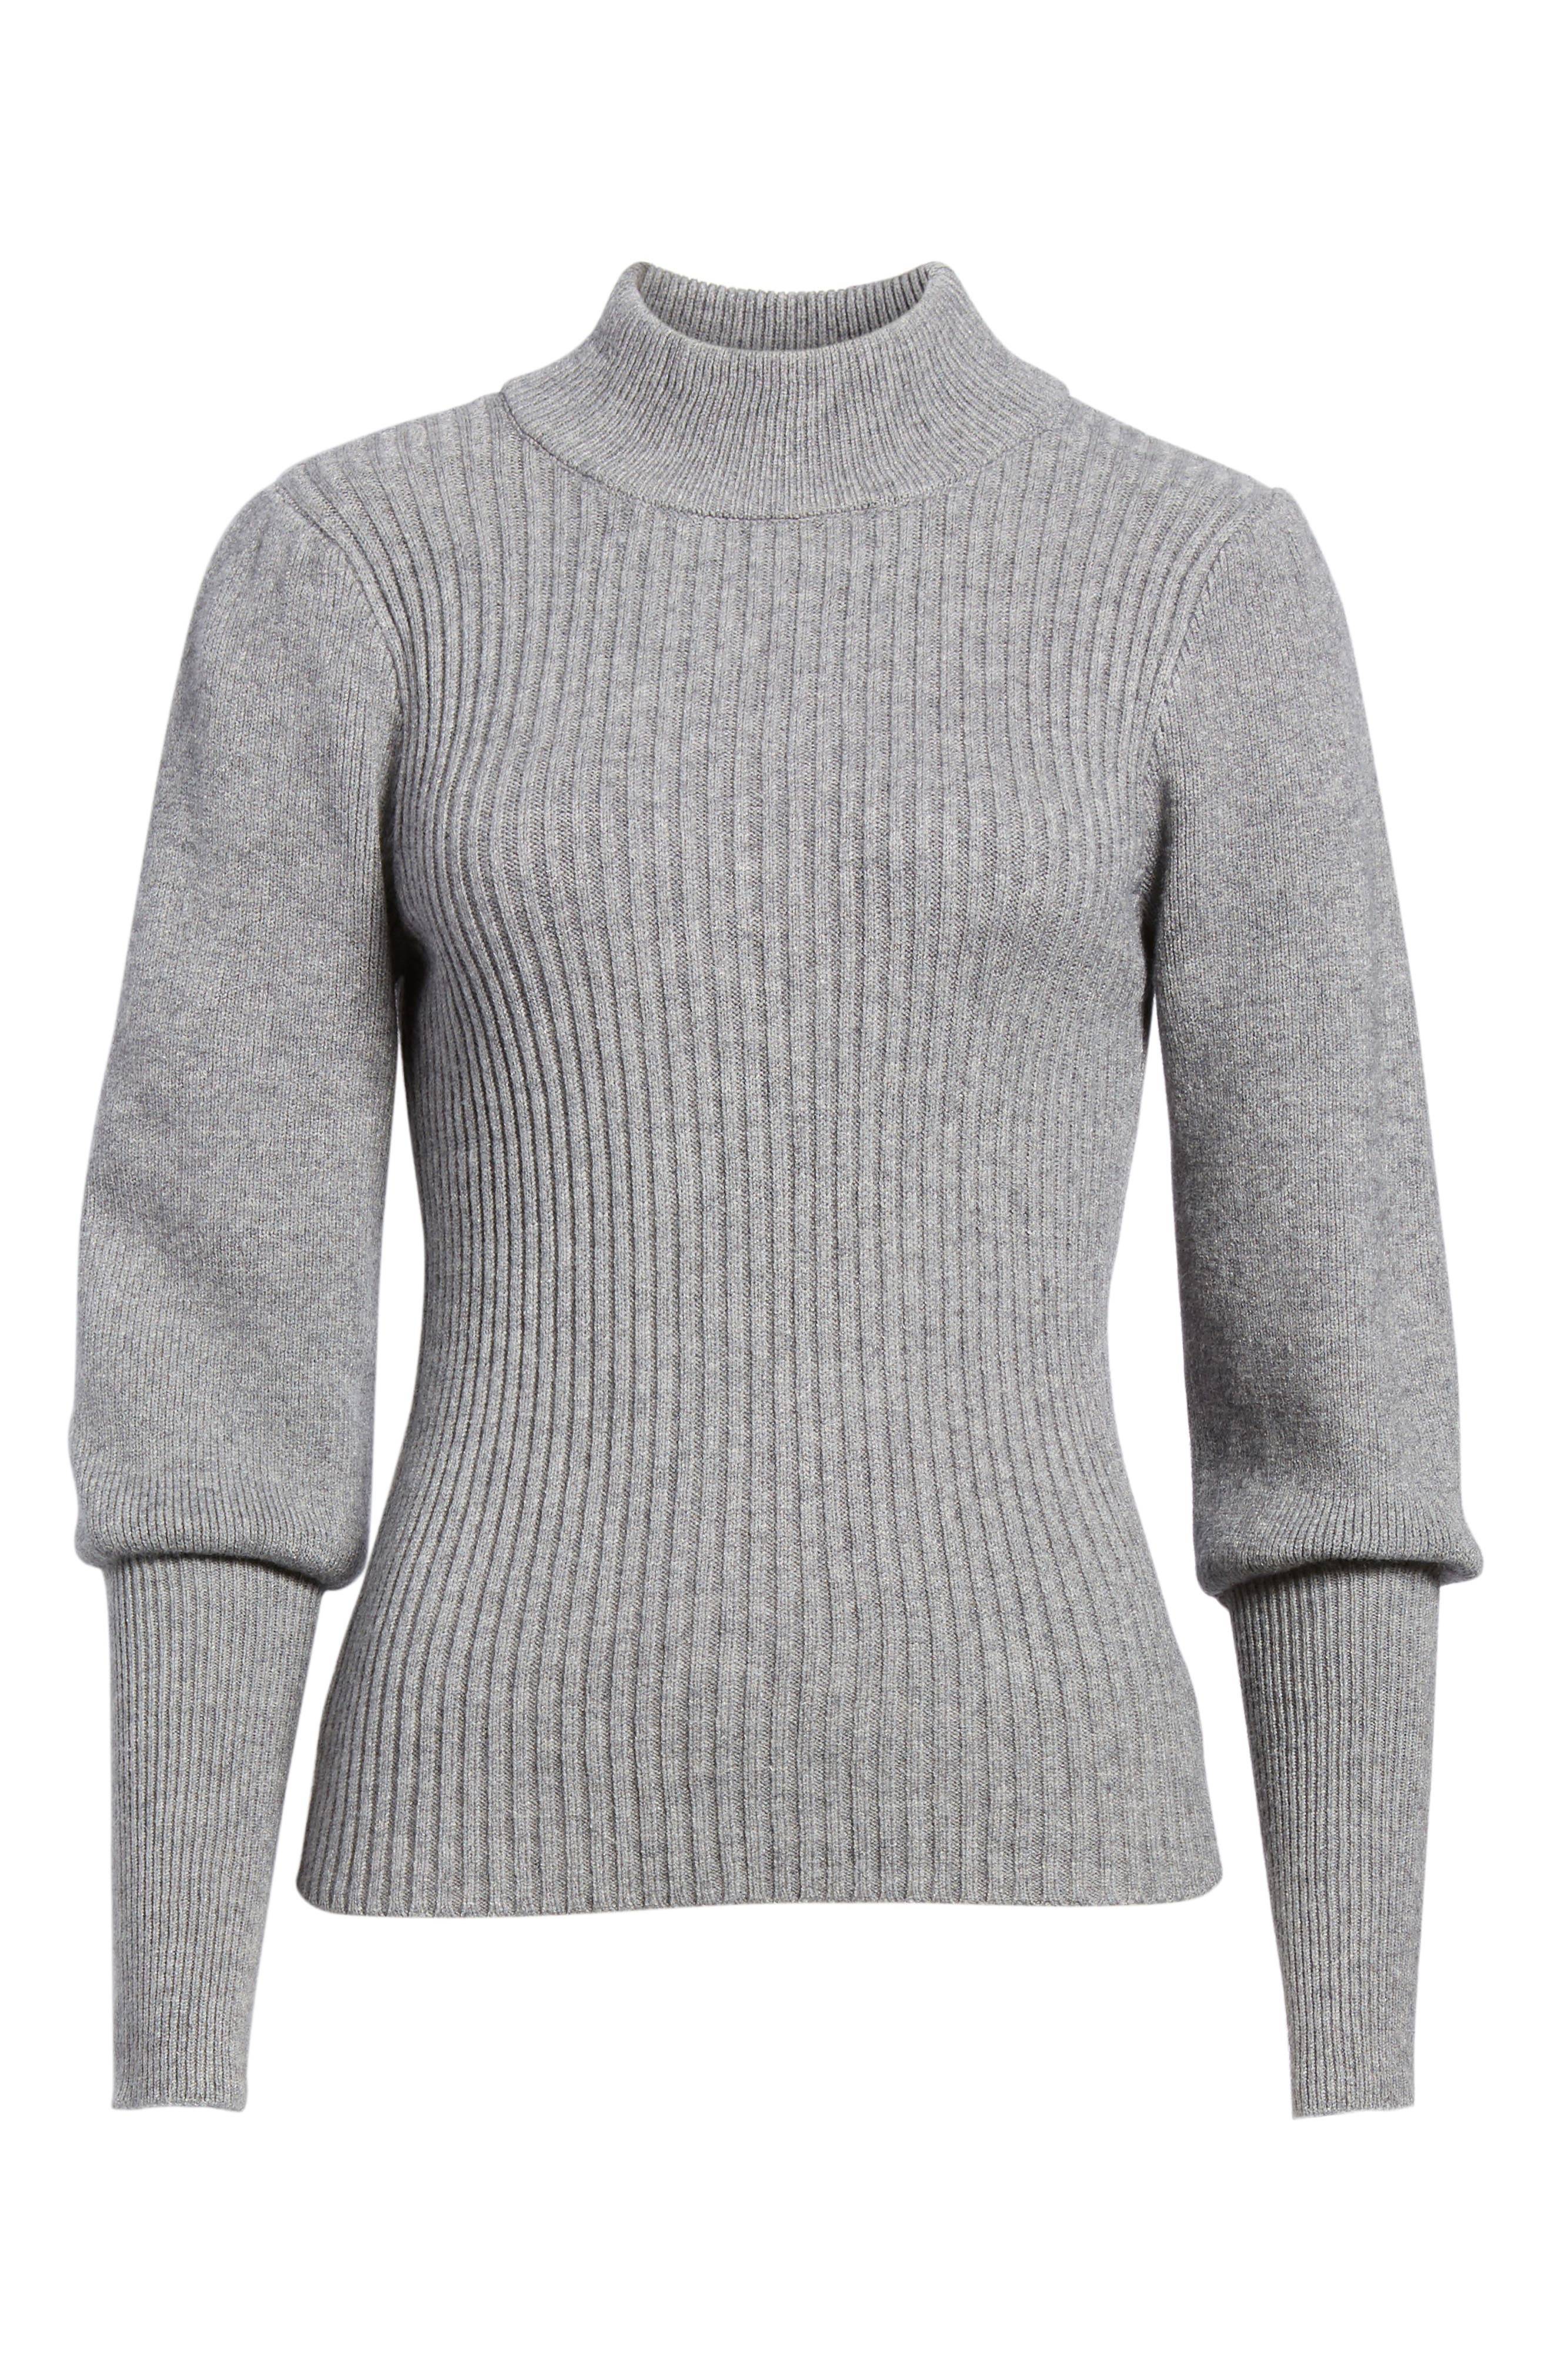 Puff Sleeve Sweater,                             Alternate thumbnail 6, color,                             Grey